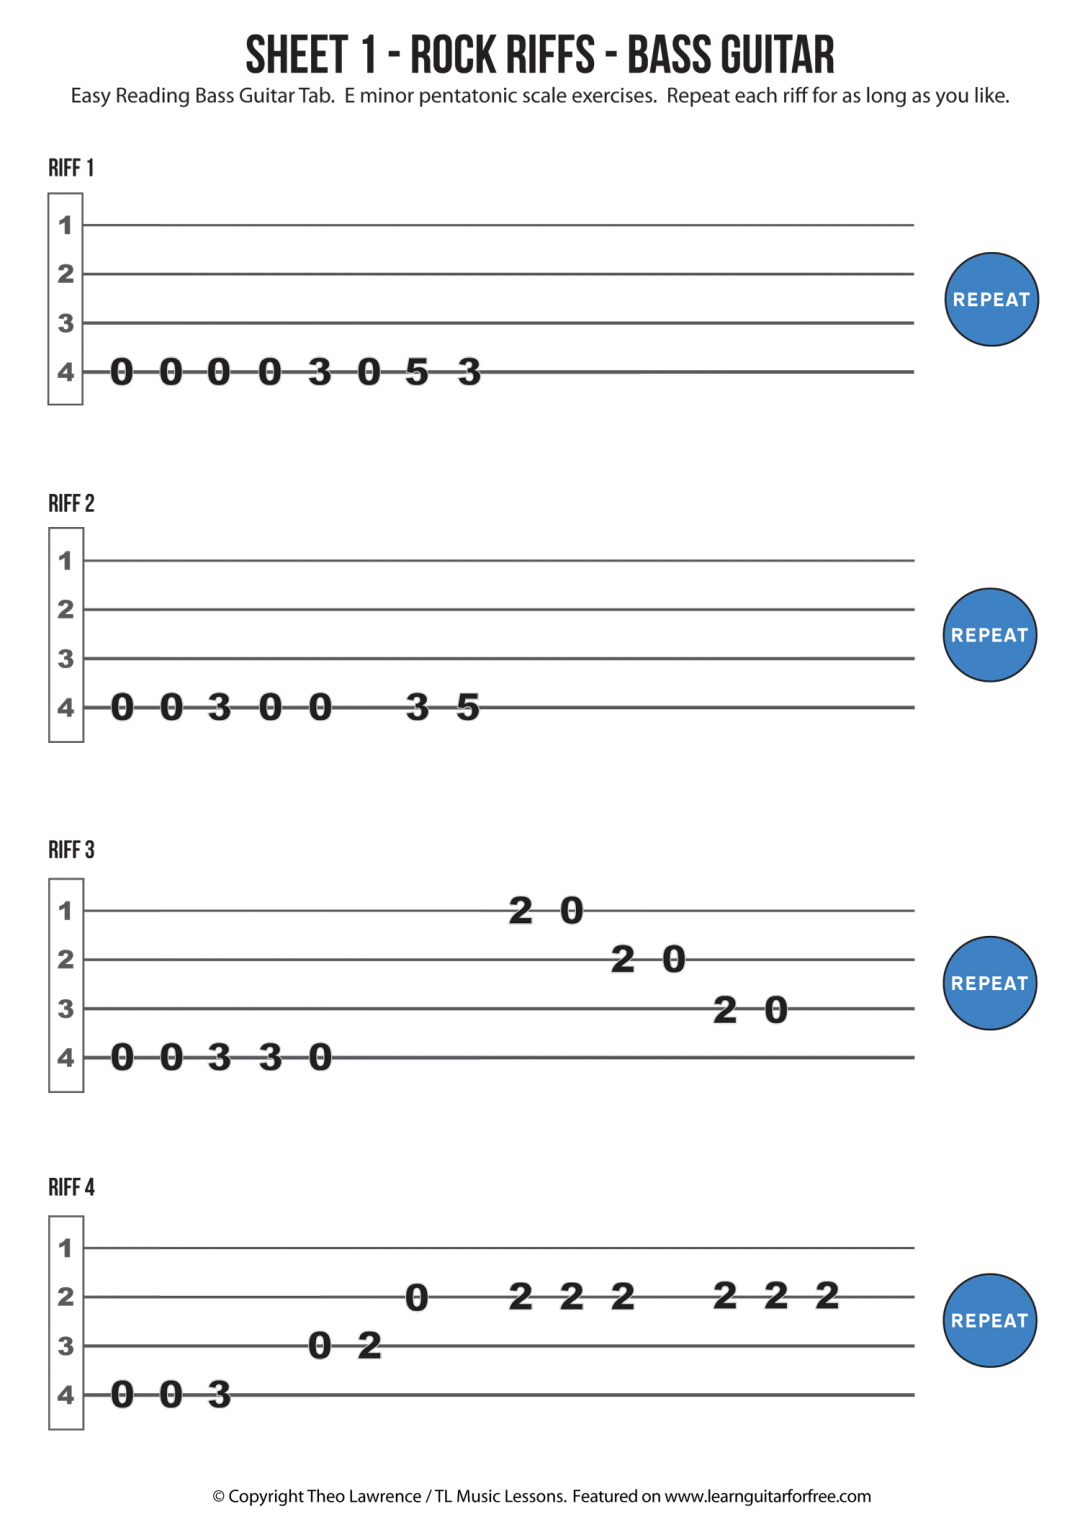 Sheet 1 – Rock Riffs – Bass Guitar